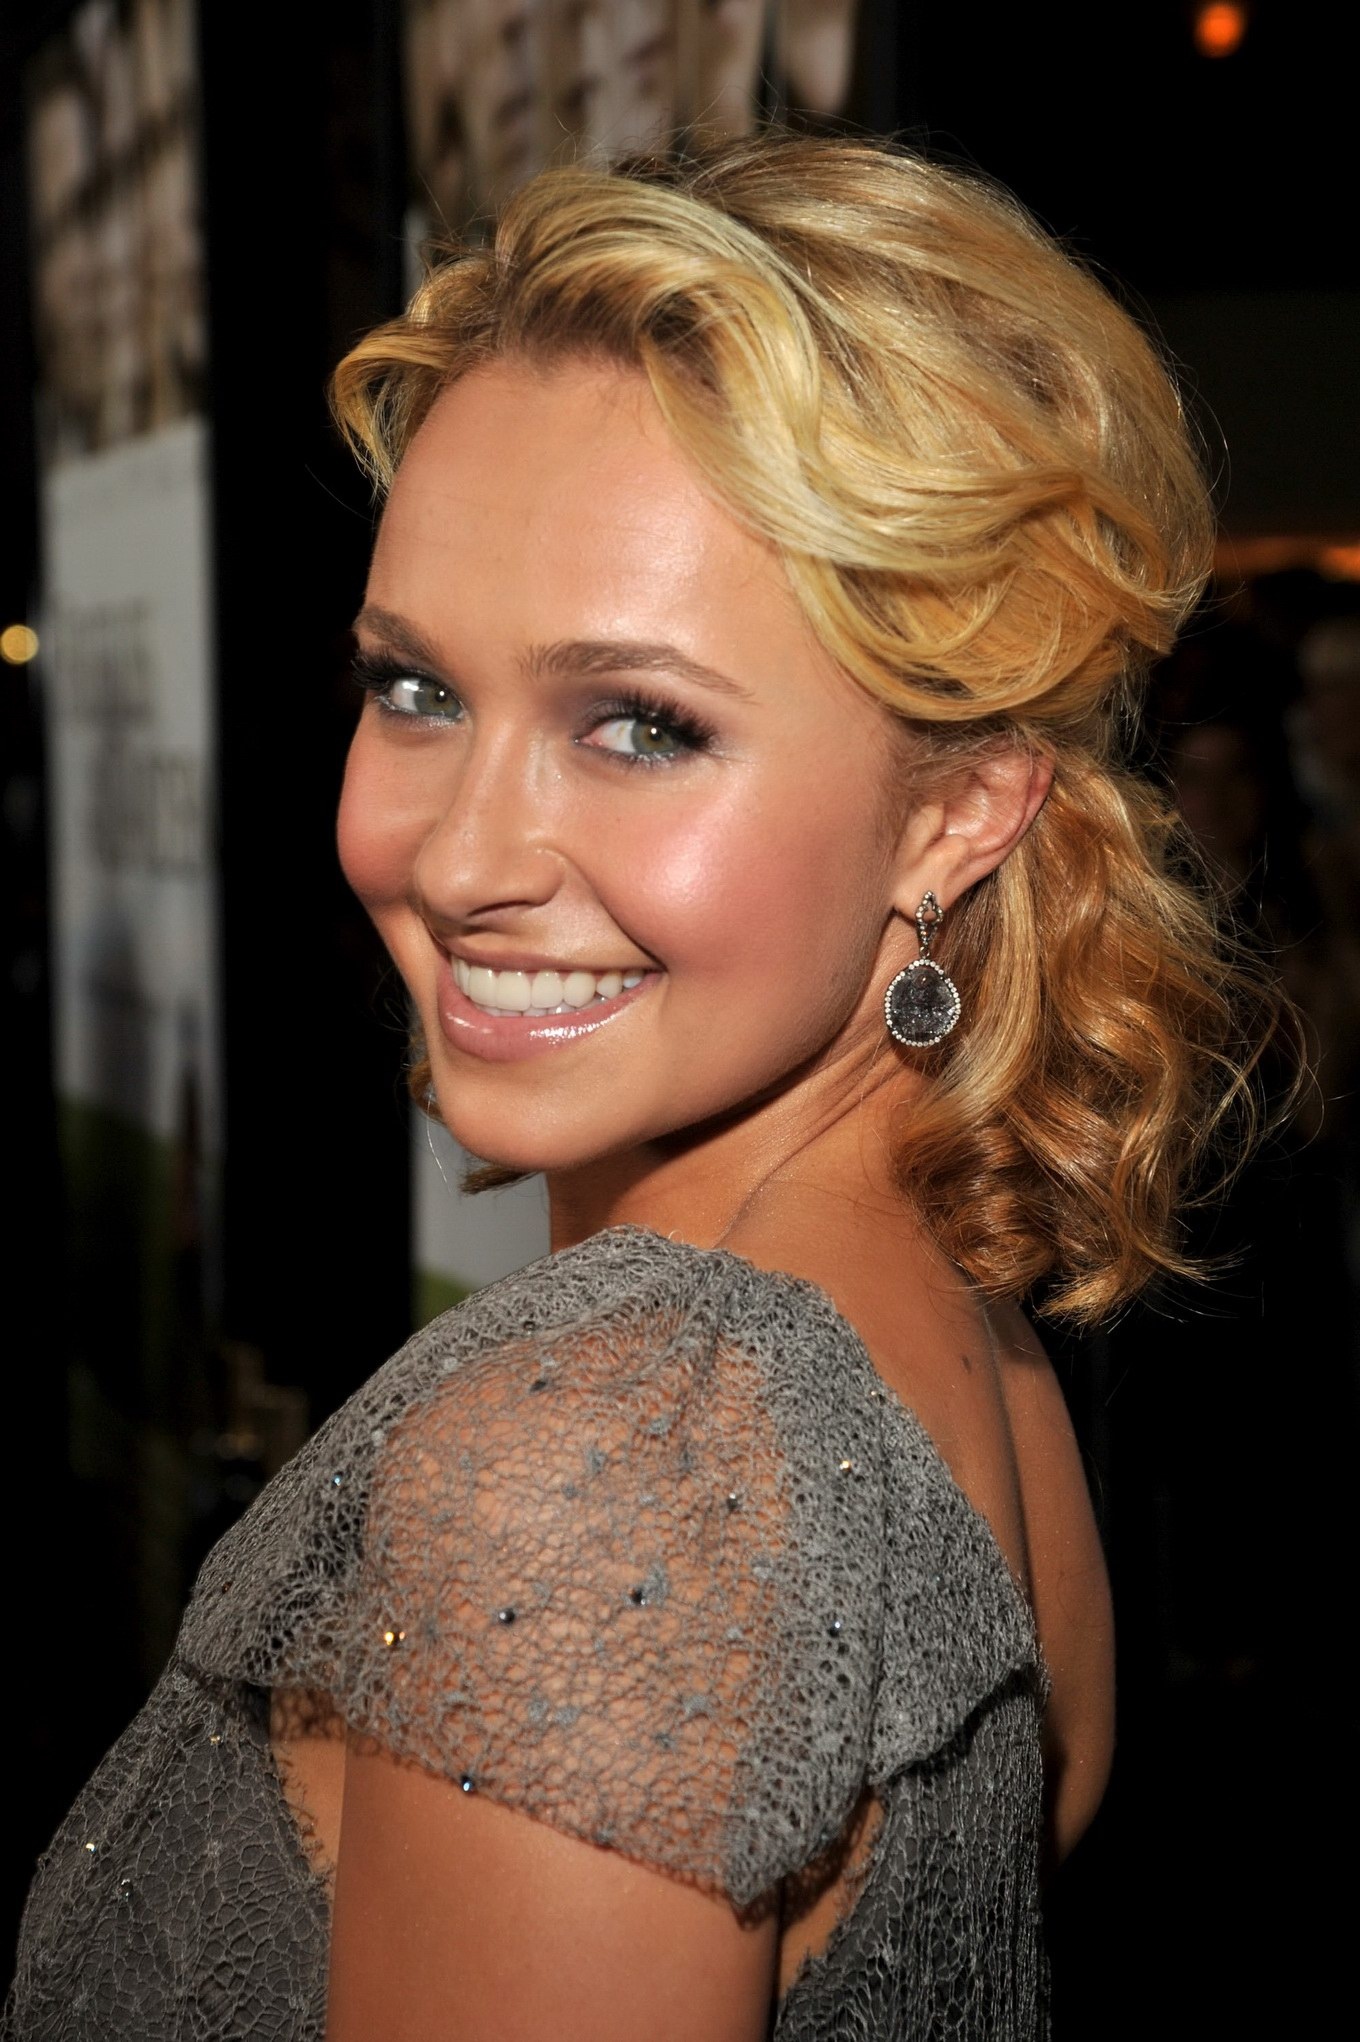 image Hayden panettiere fireflies in the garden